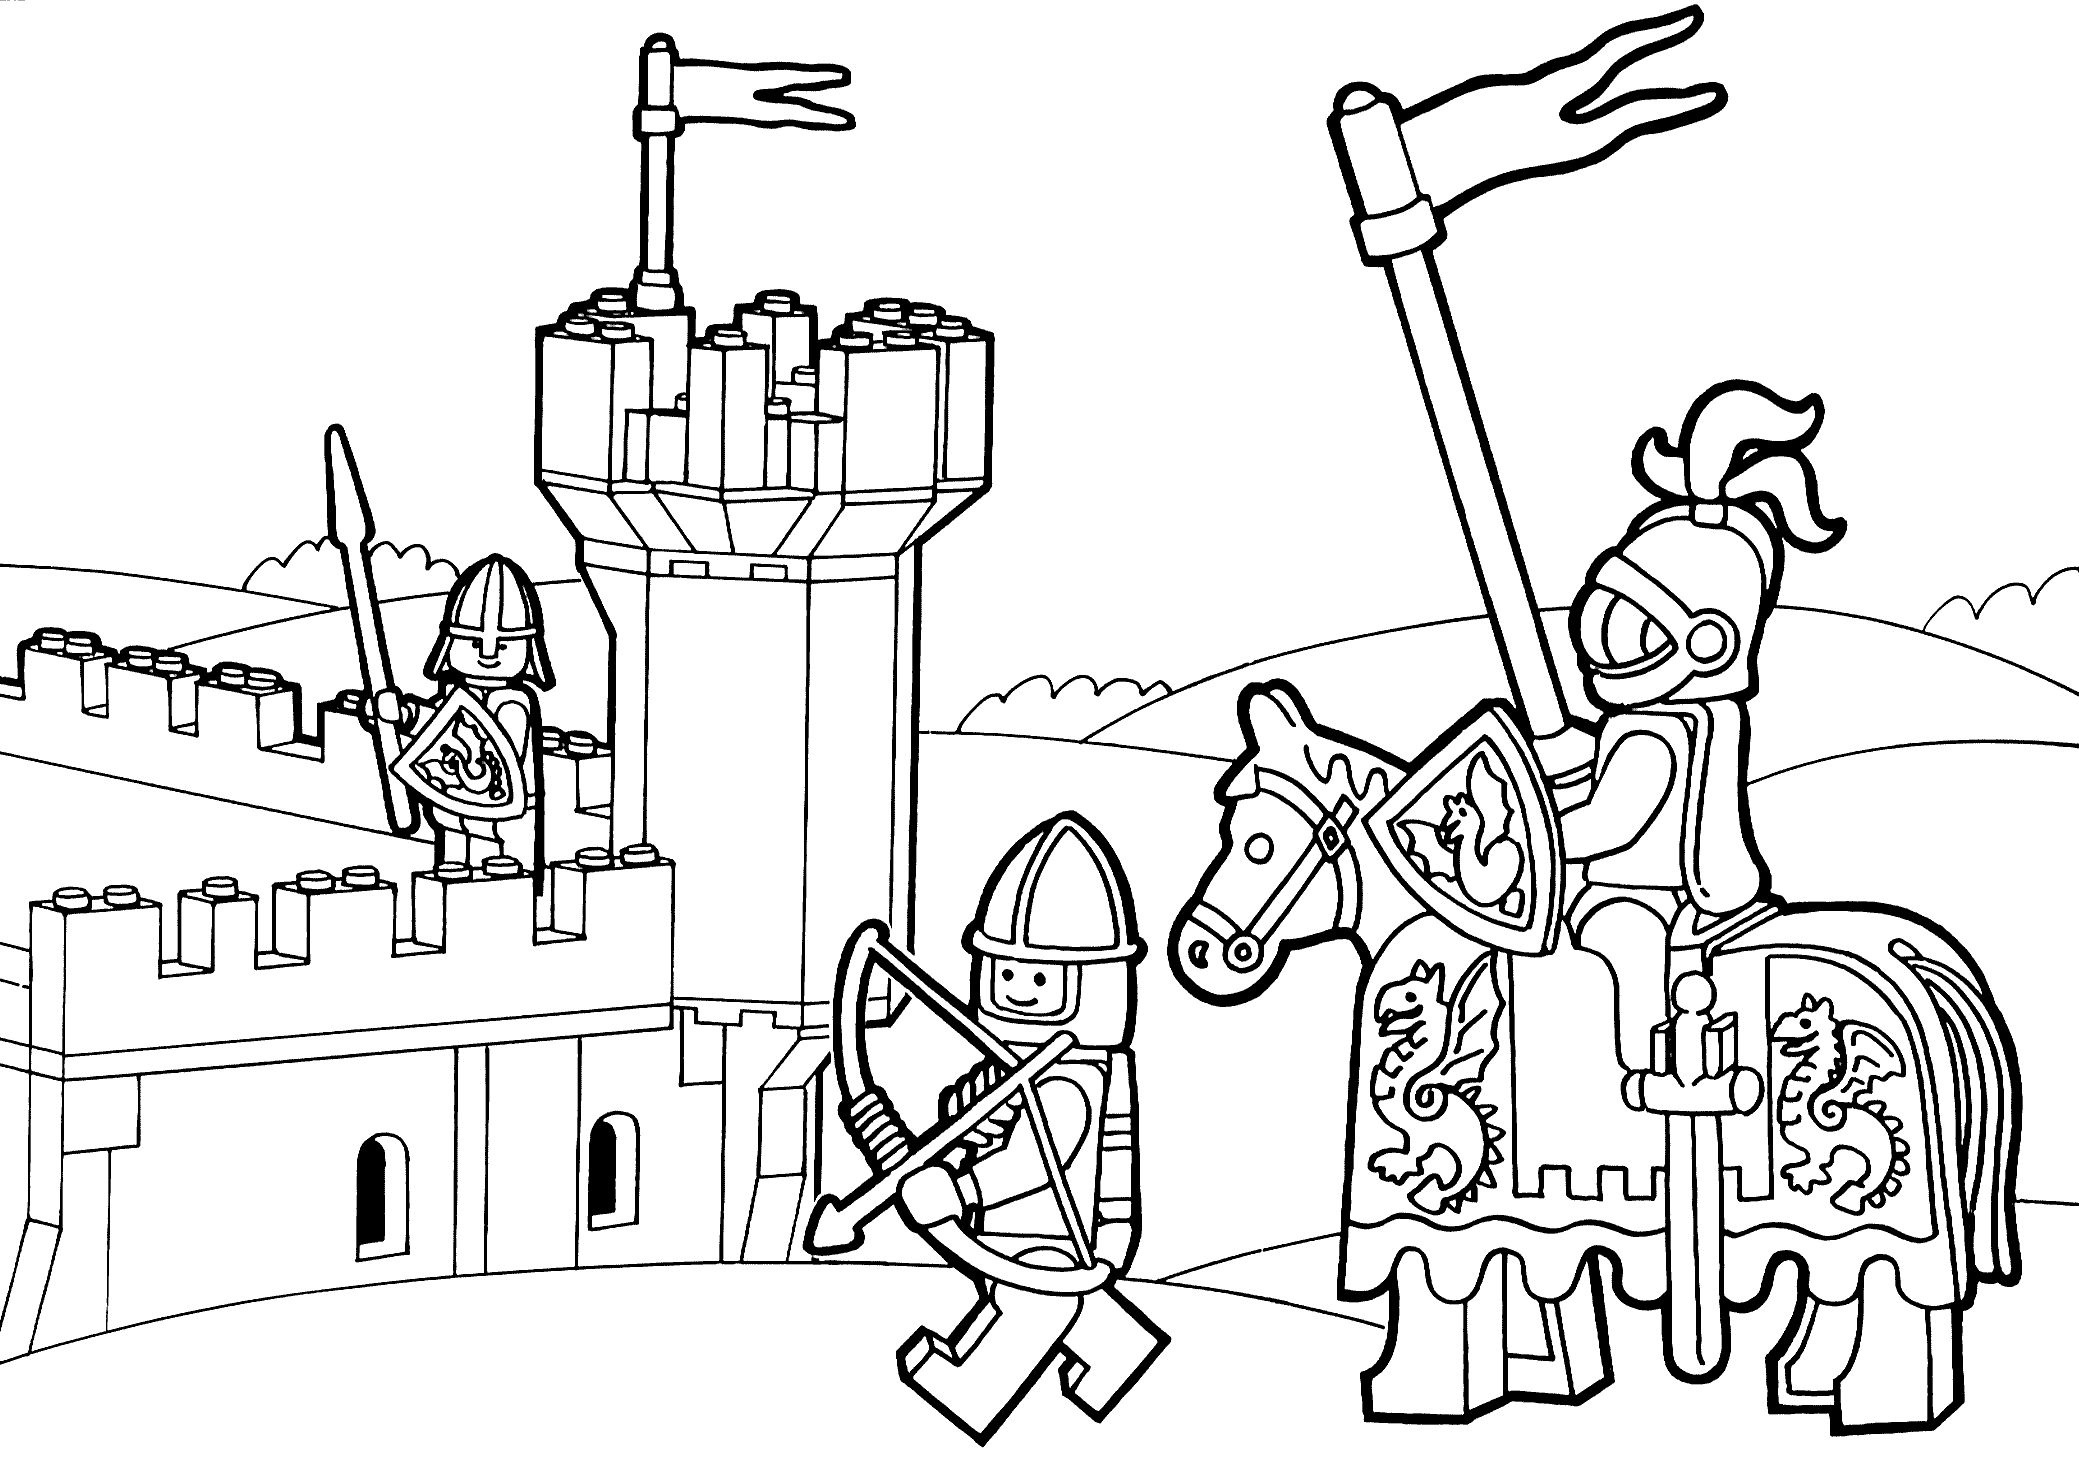 lego coloring pages free create your own lego coloring pages for kids lego coloring pages free